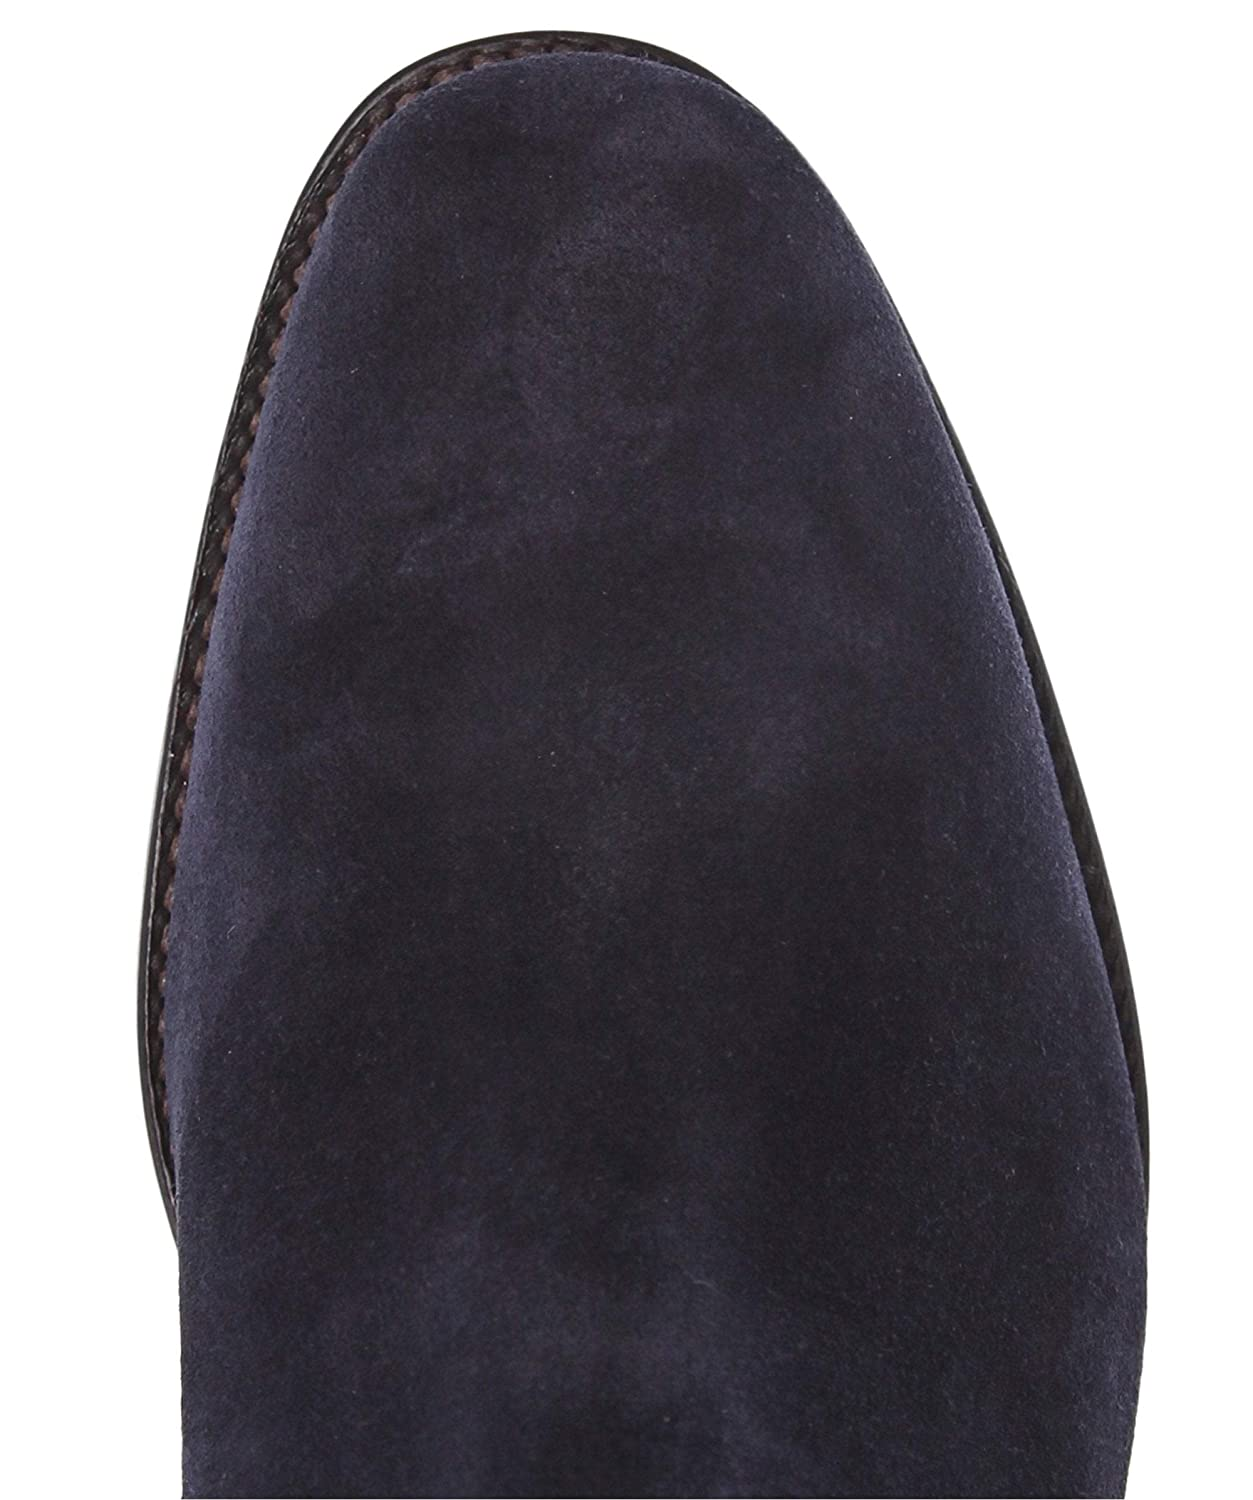 Boots Loake Mens Suede Apsley Chelsea Boots Navy Men ...